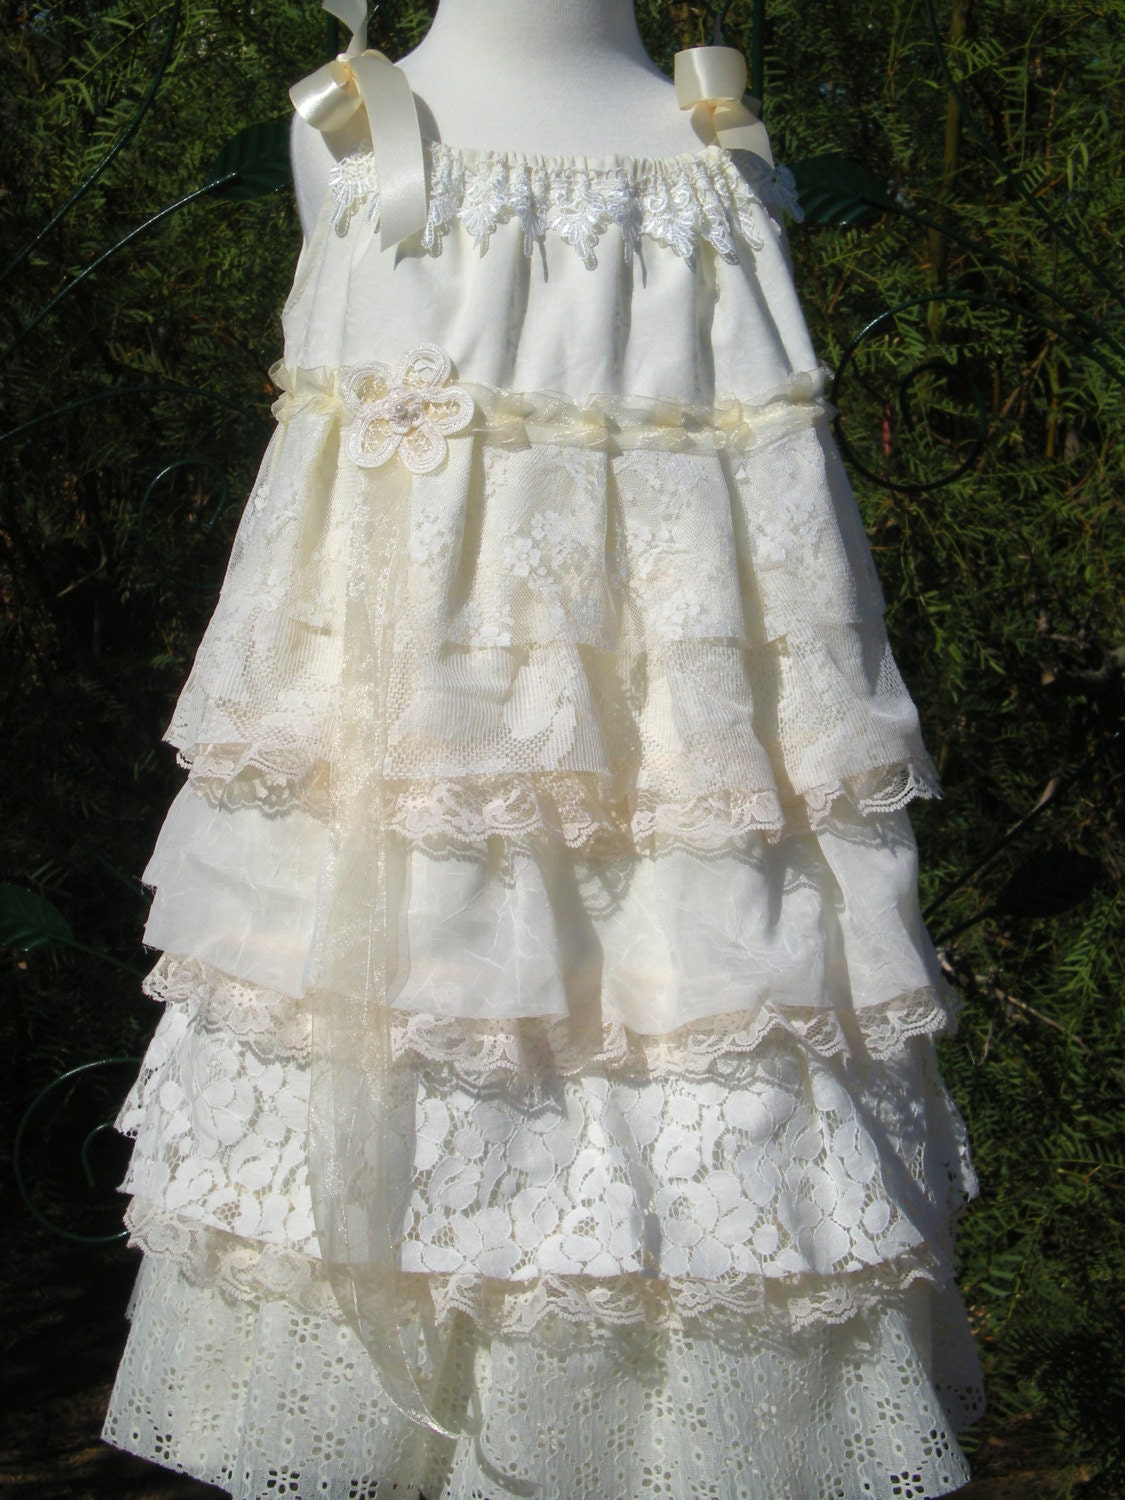 Lace Flower Girl Dress Shabby Chic Frilly Ruffles Dress